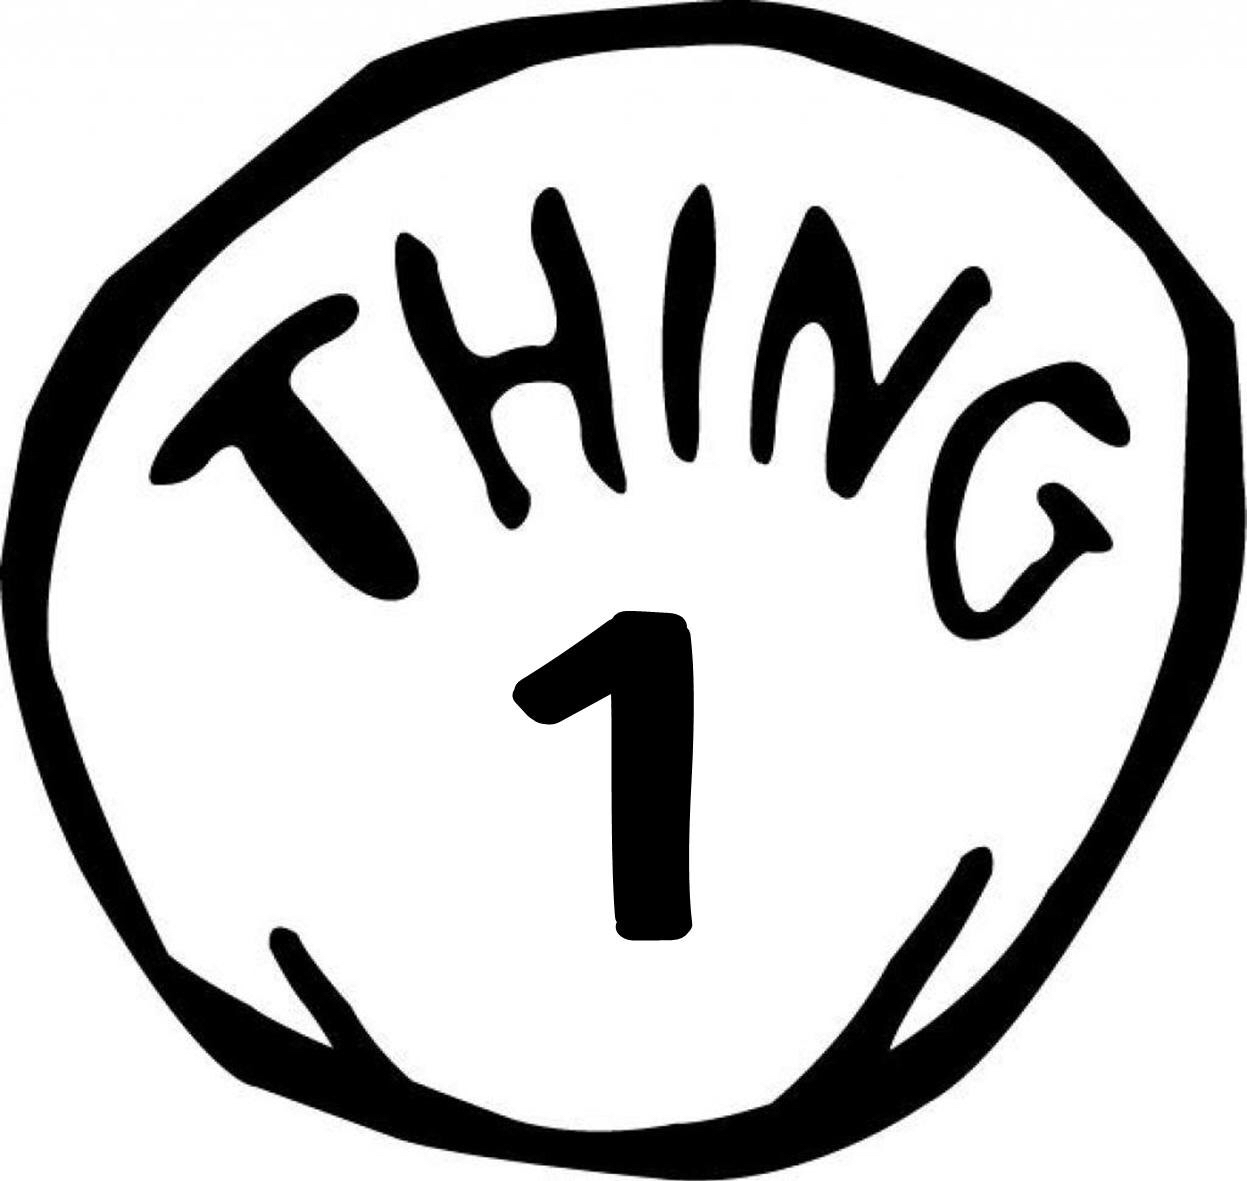 139 Thing 1 And Thing 2 free clipart.